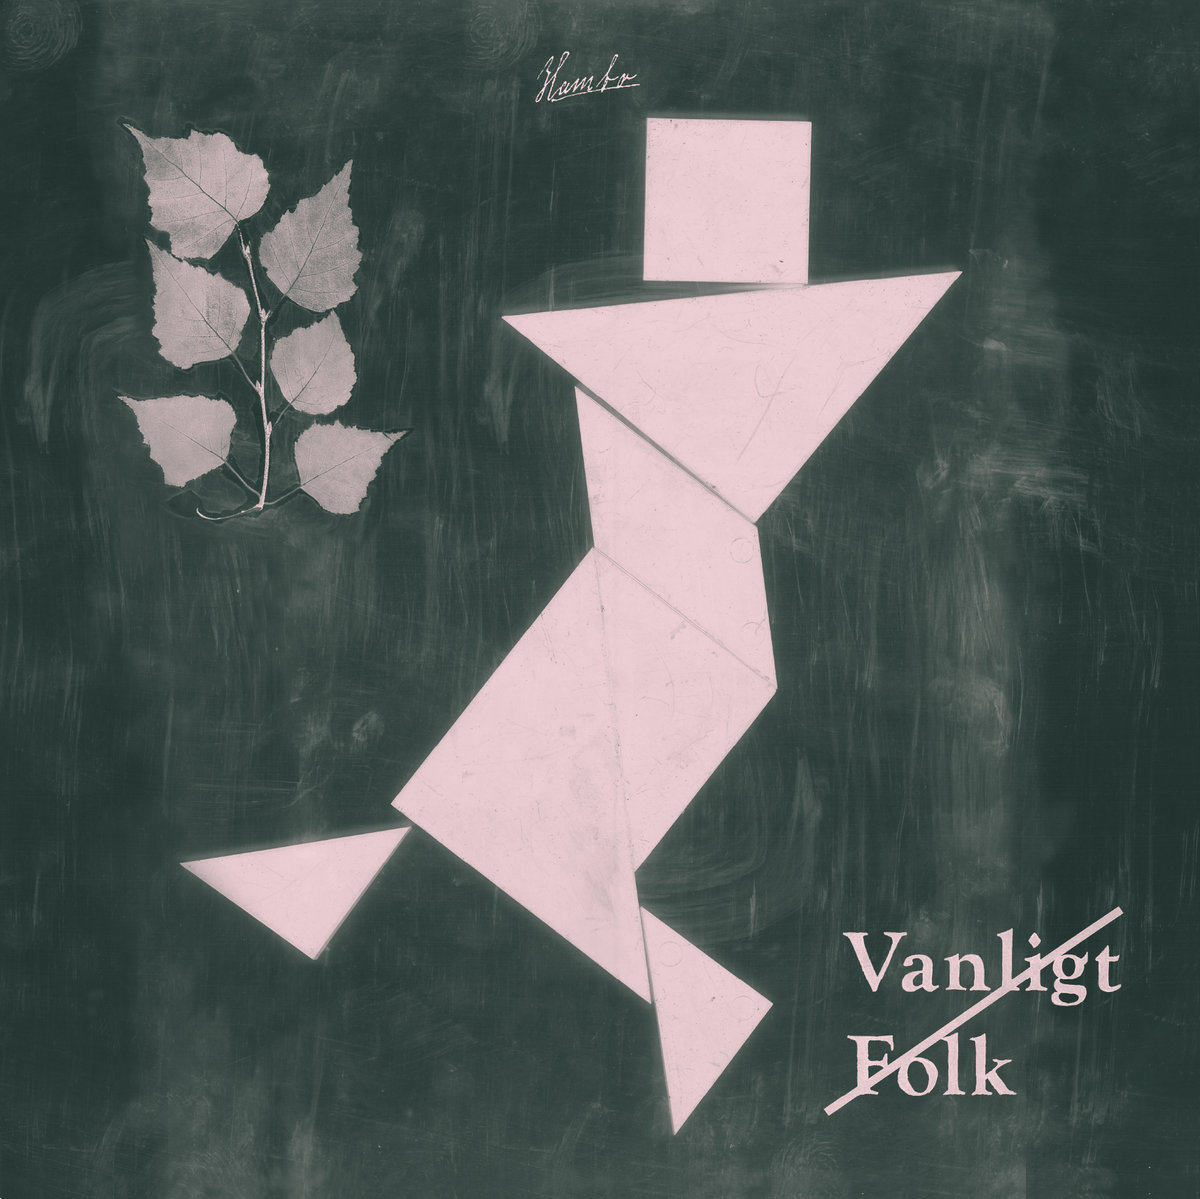 Vanligt Folk - Hambo     Review